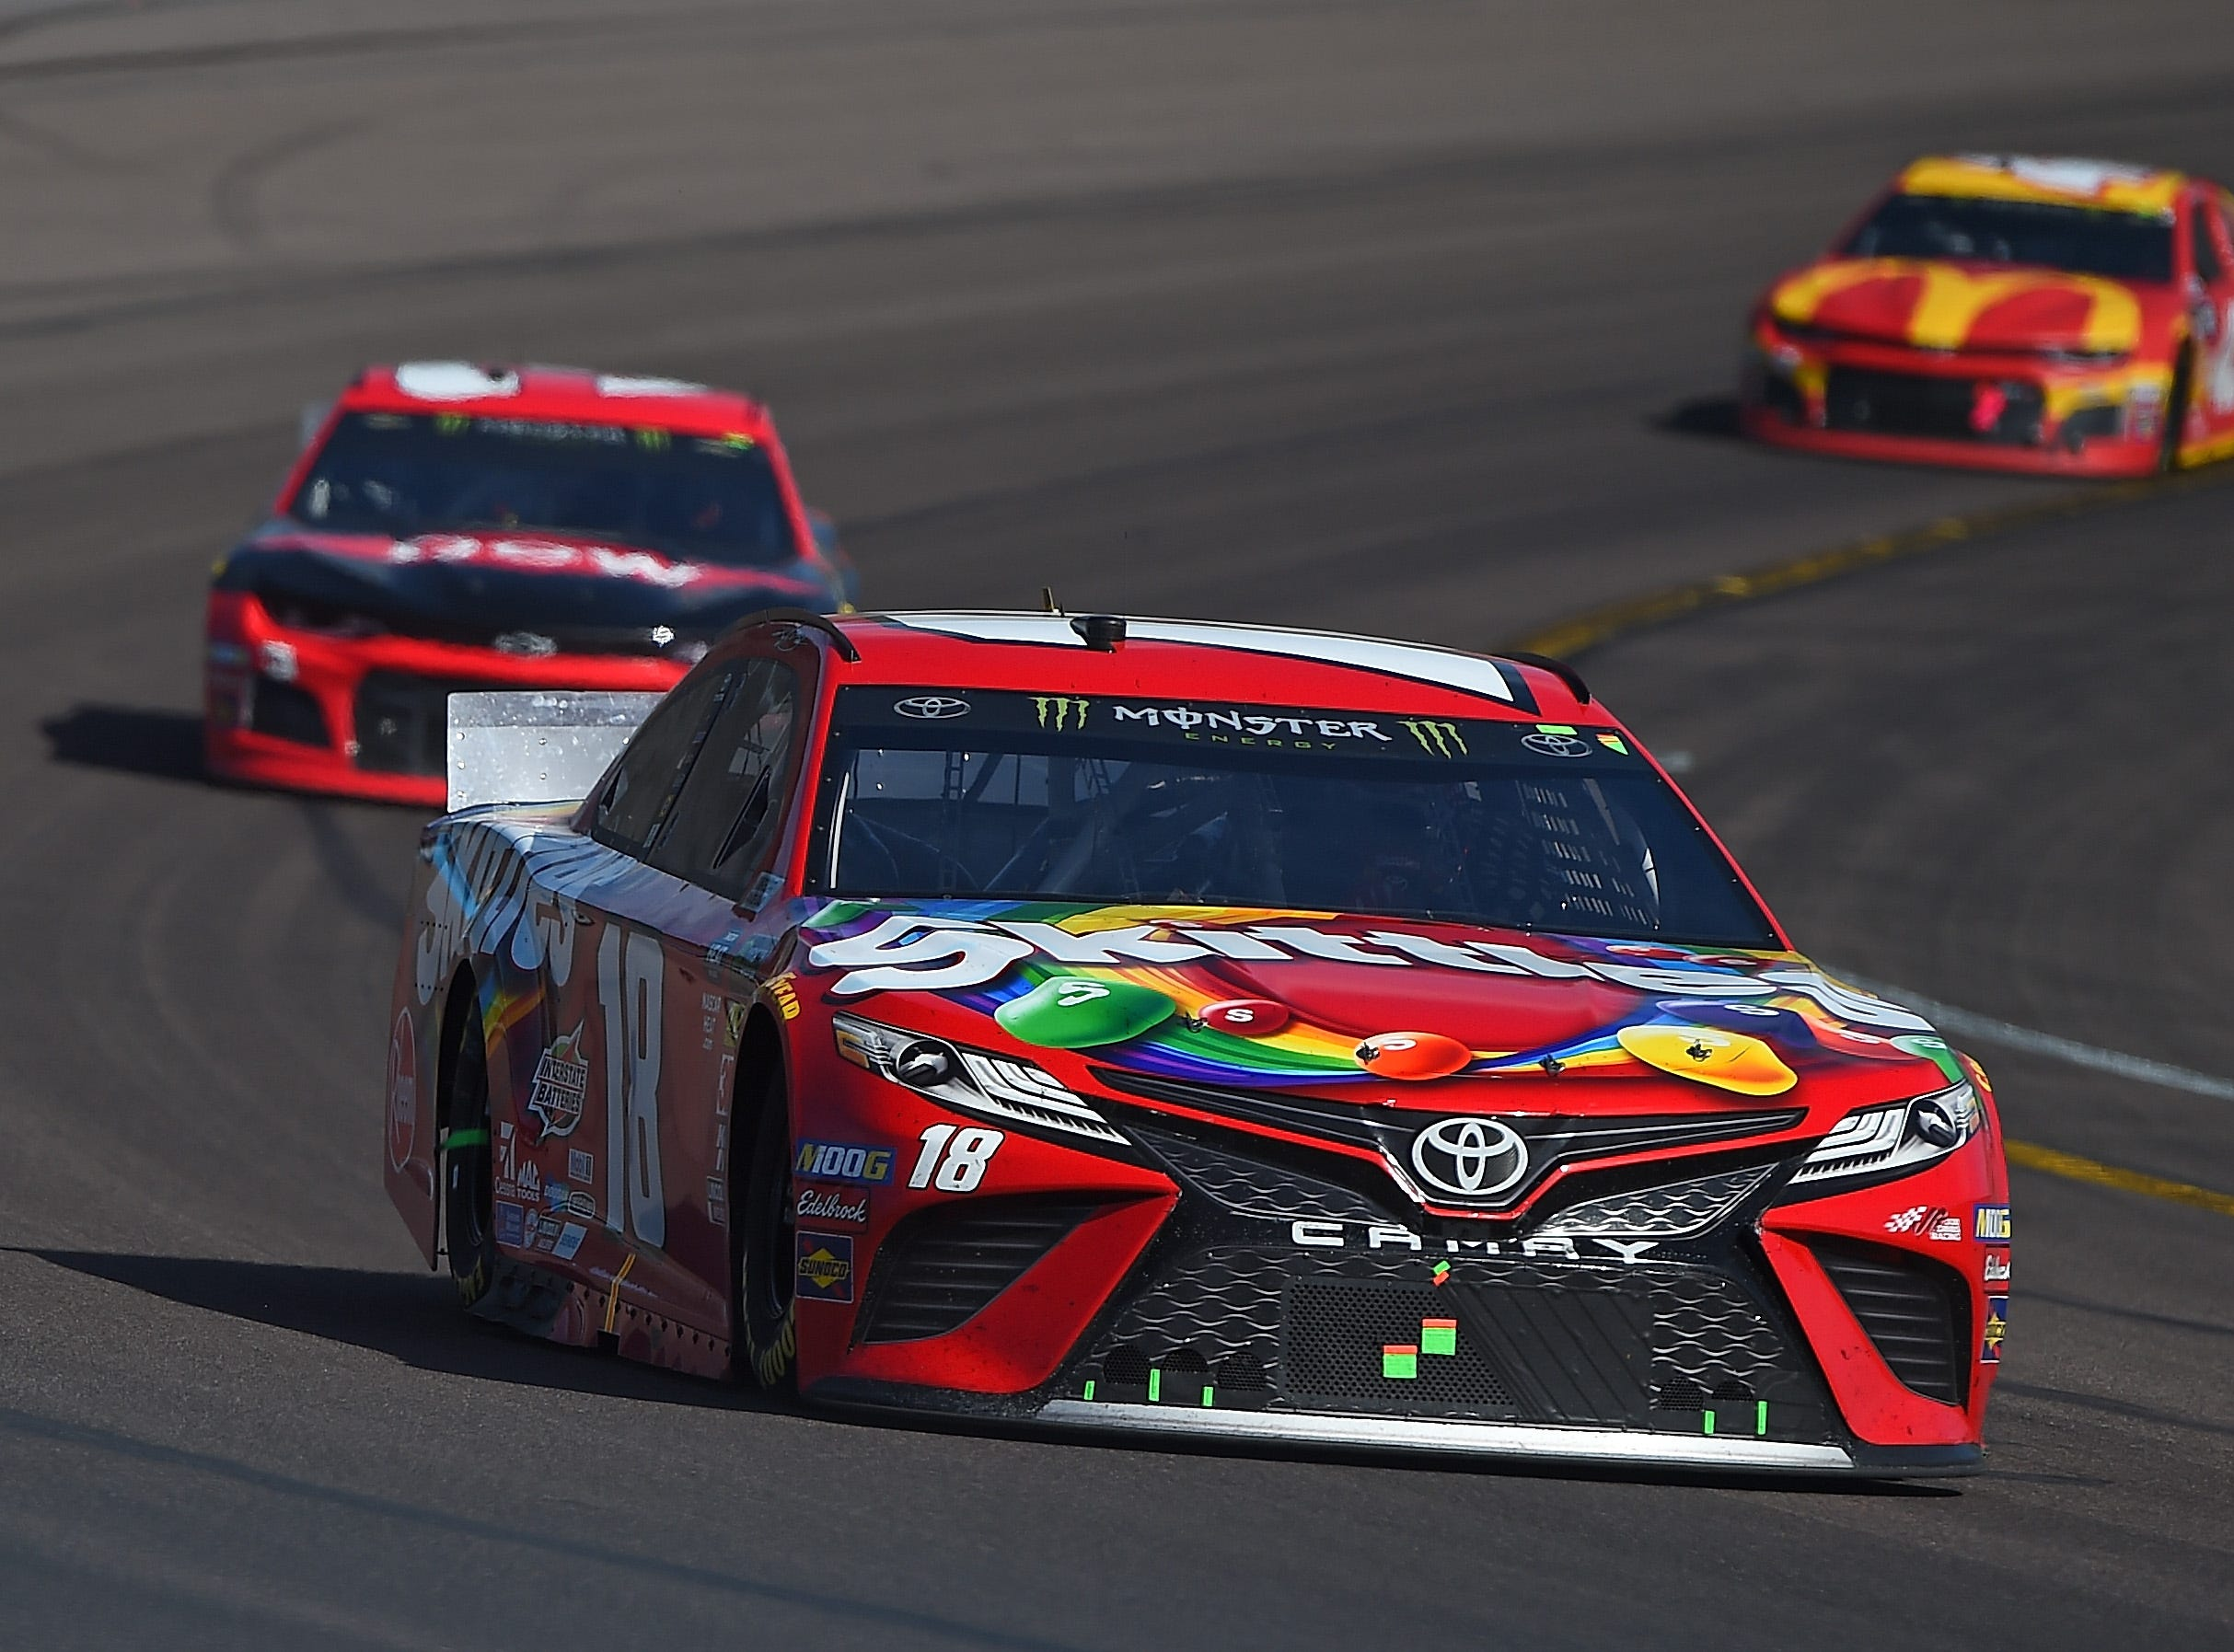 AVONDALE, AZ - MARCH 10:  Kyle Busch, driver of the #18 Skittles Toyota, leads a pack of cars during the Monster Energy NASCAR Cup Series TicketGuardian 500 at ISM Raceway on March 10, 2019 in Avondale, Arizona.  (Photo by Stacy Revere/Getty Images)